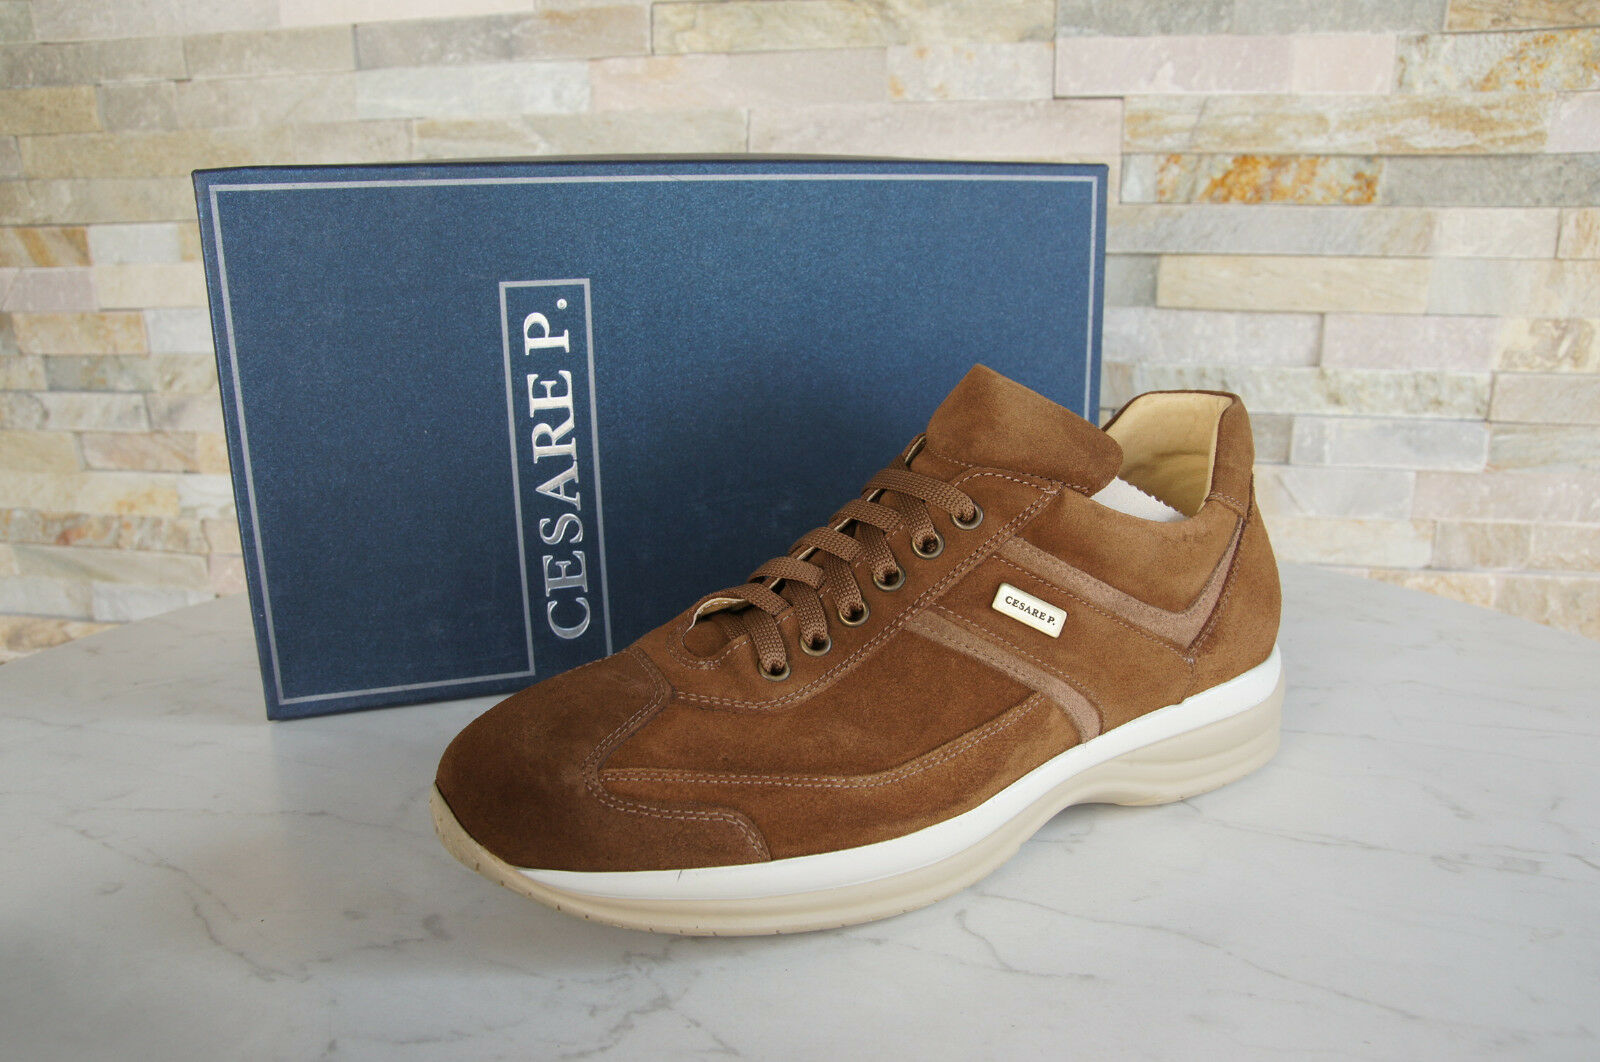 Cesare P.Paciotti 40 6 Sneakers Lace up shoes Easy Beige New